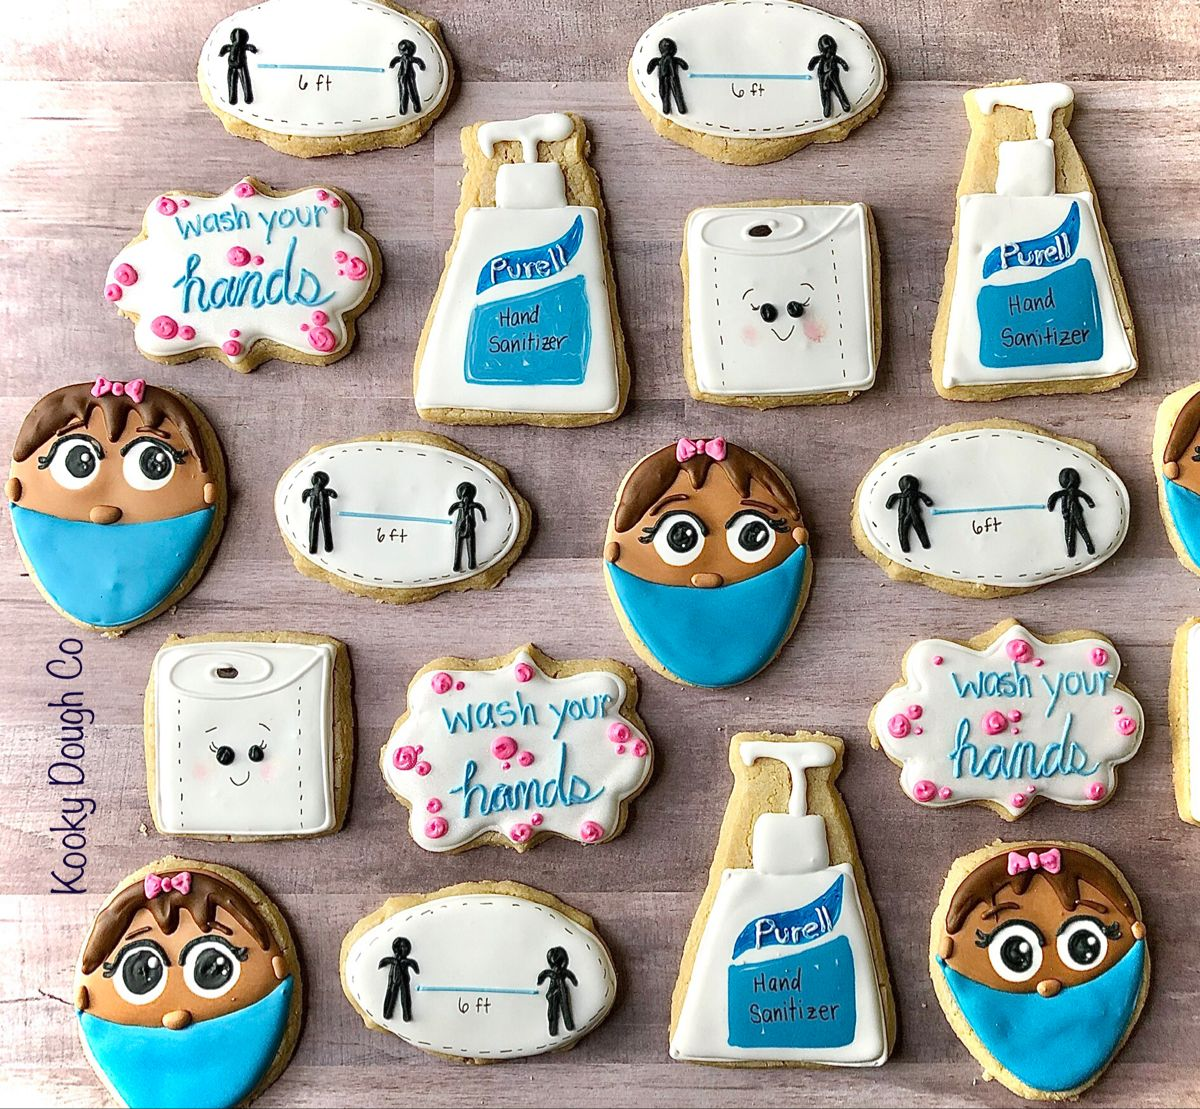 Pin on Decorated Cookies